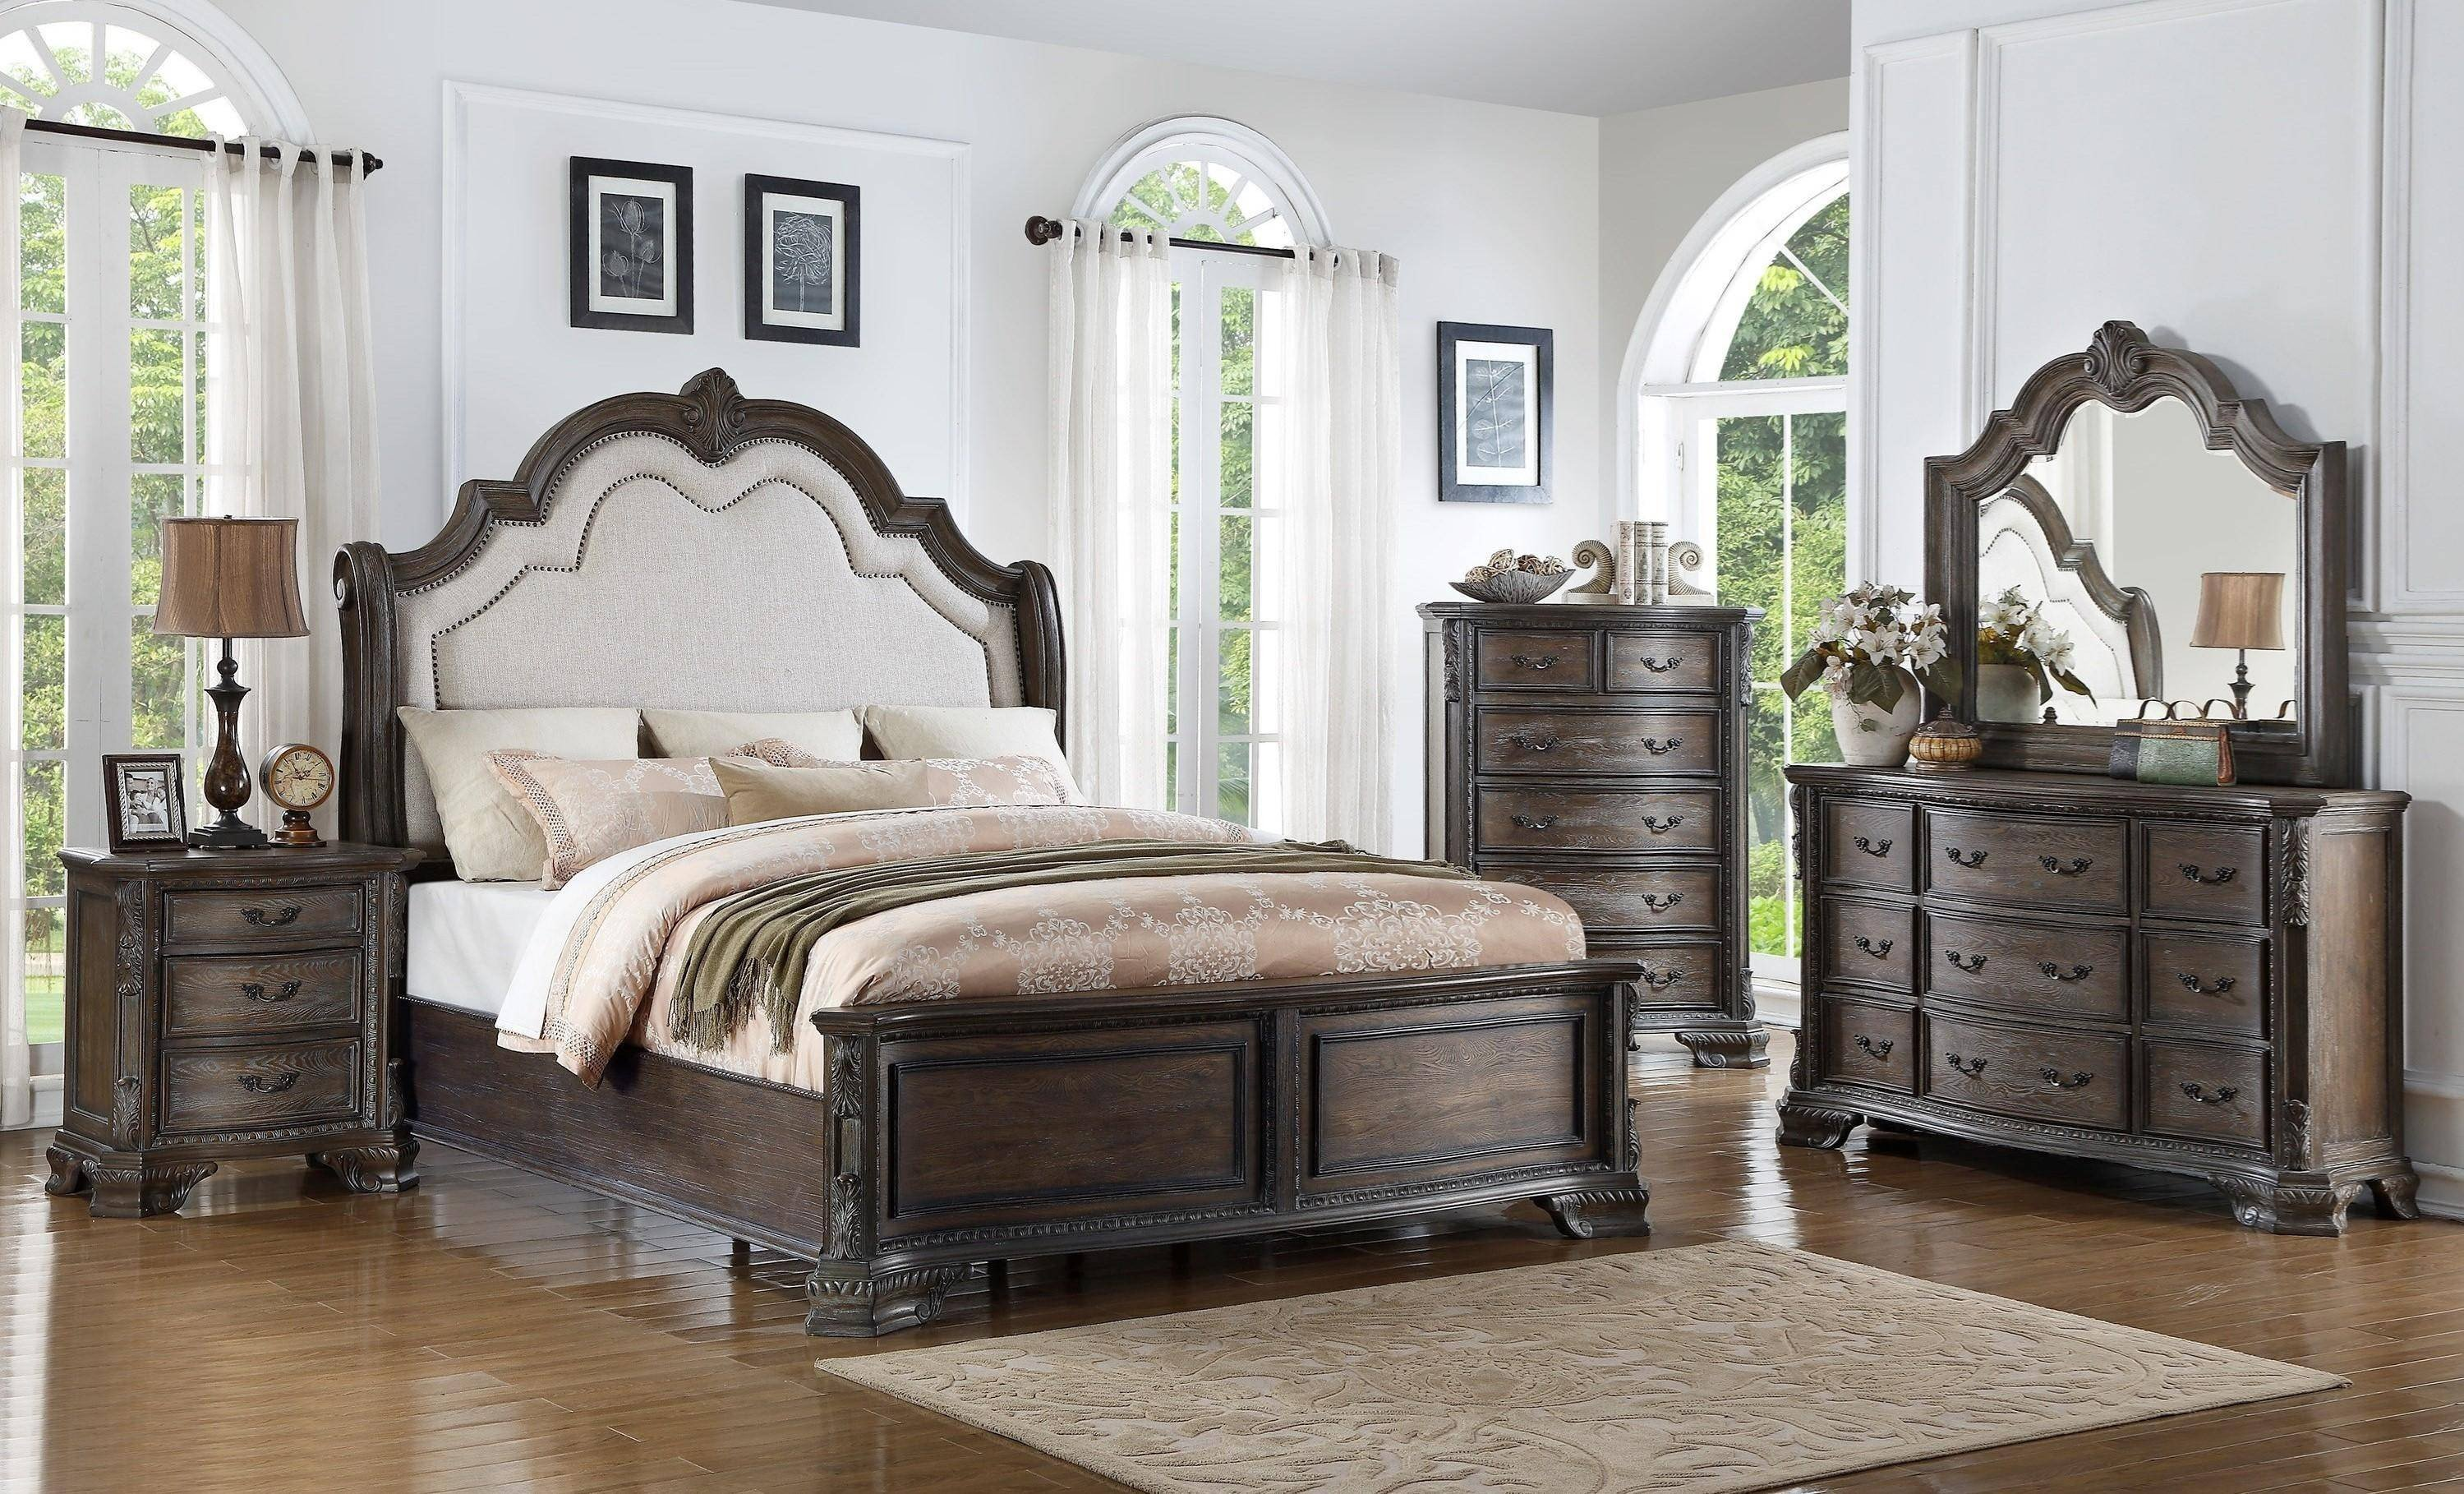 Low Price Bedroom Set Elegant Crown Mark B1120 Sheffield Queen Panel Bed In Gray Fabric